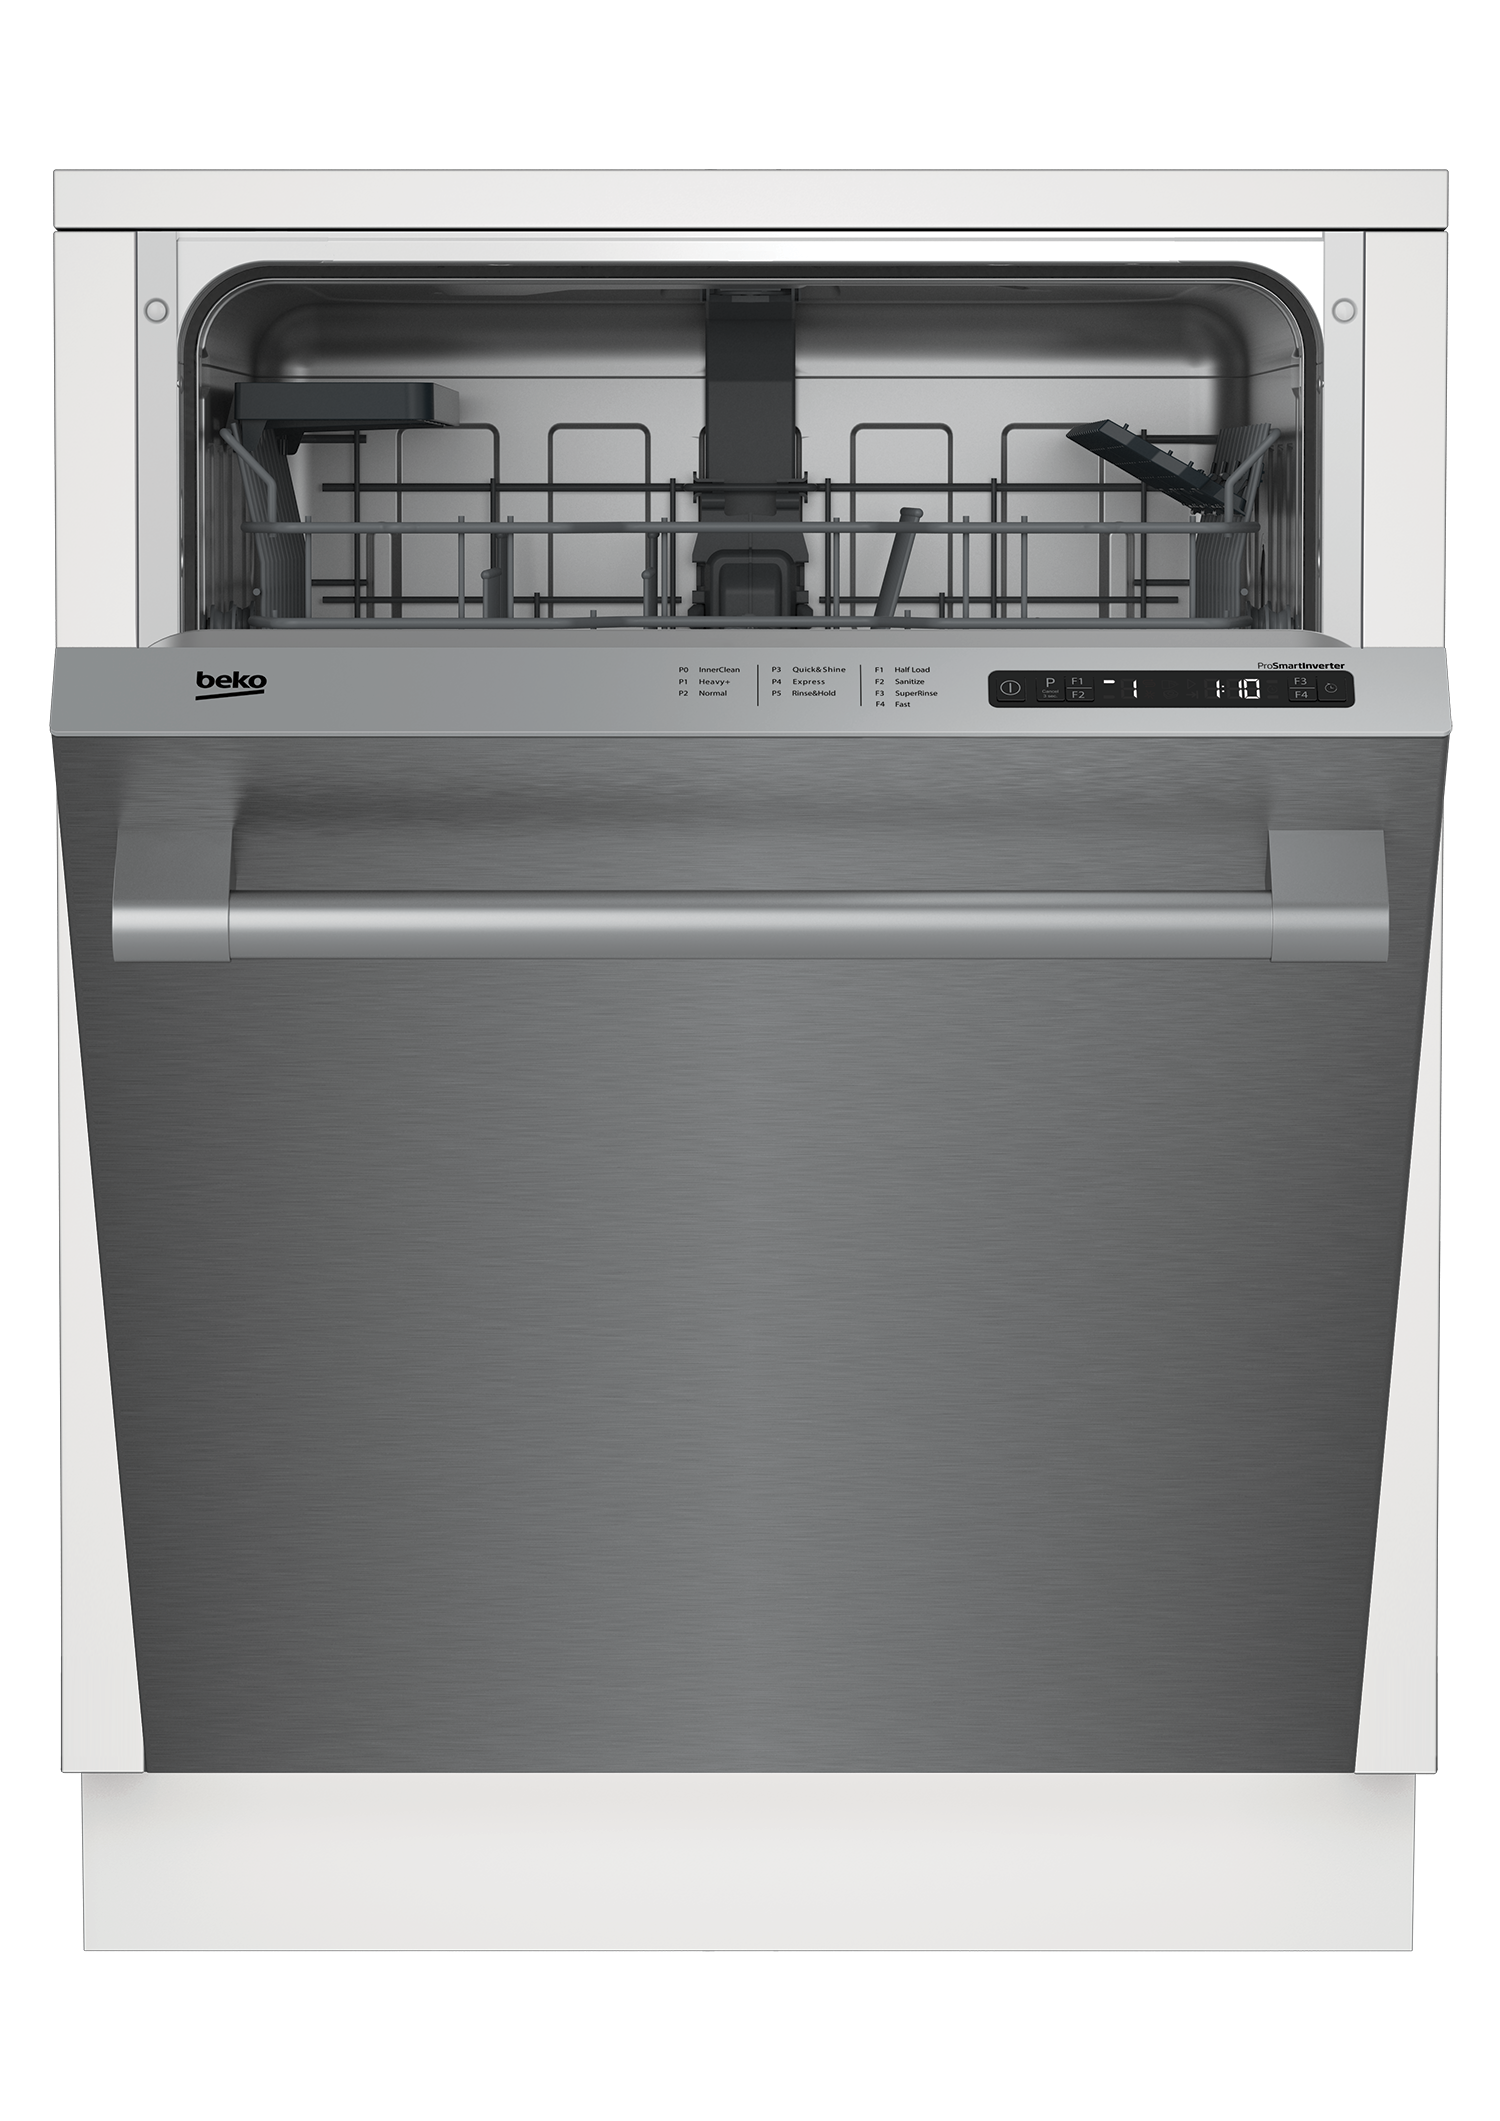 Tall Tub Stainless Dishwasher, 14 place settings, 48 dBa, Top Control DDT25401X